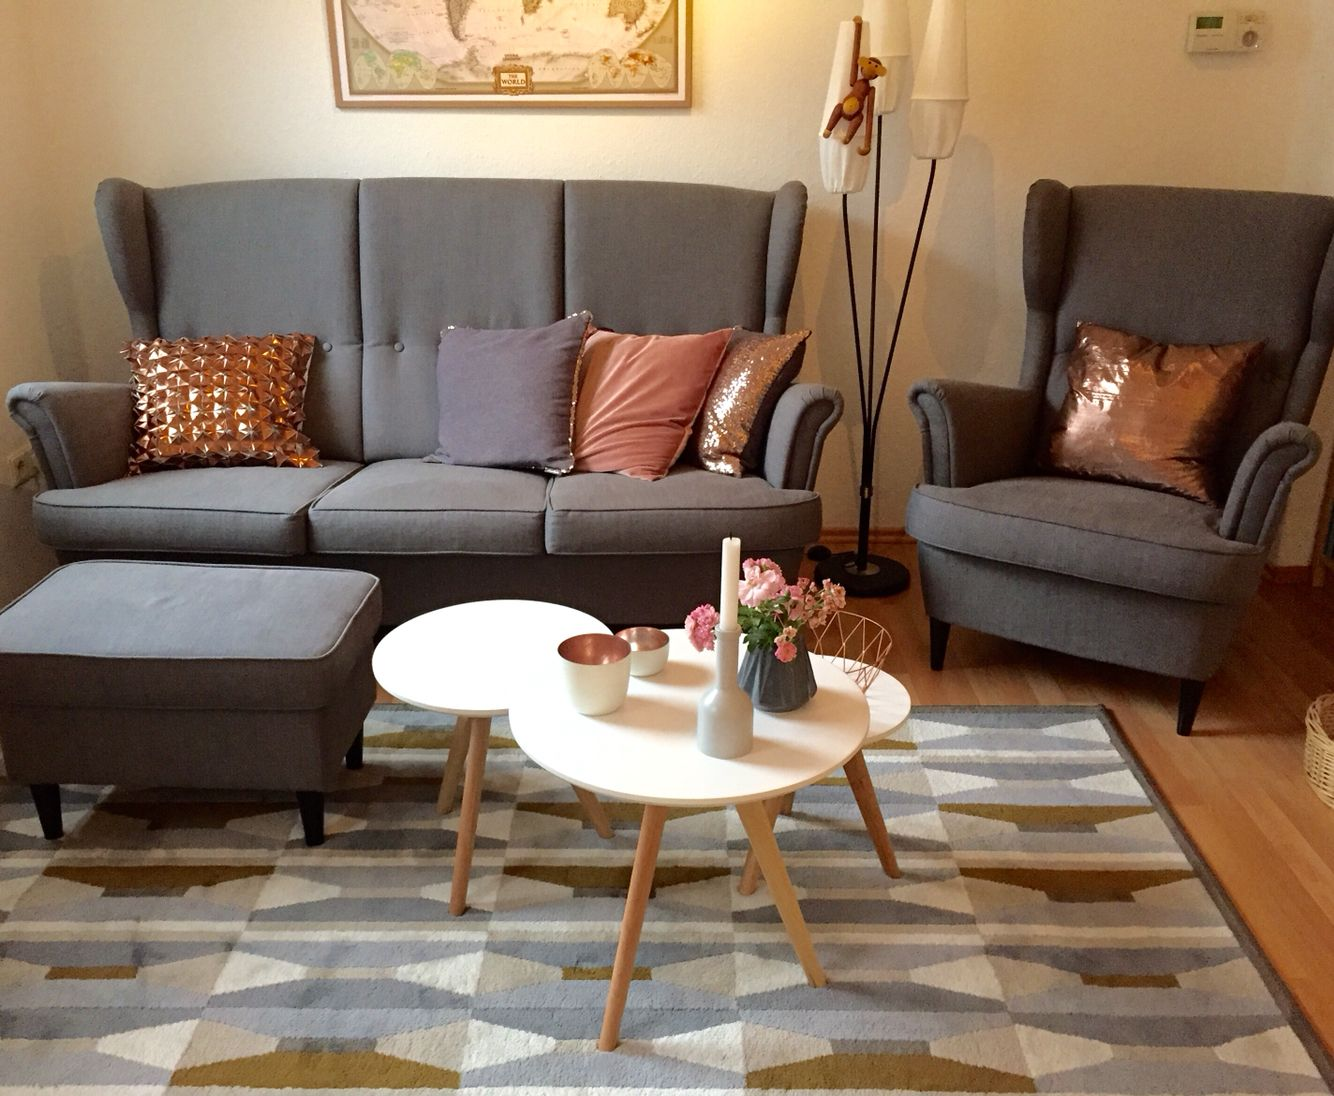 Mid Century Modern Living Room With Ikea Strandmon Sofa And Copper Decor Urban Retro